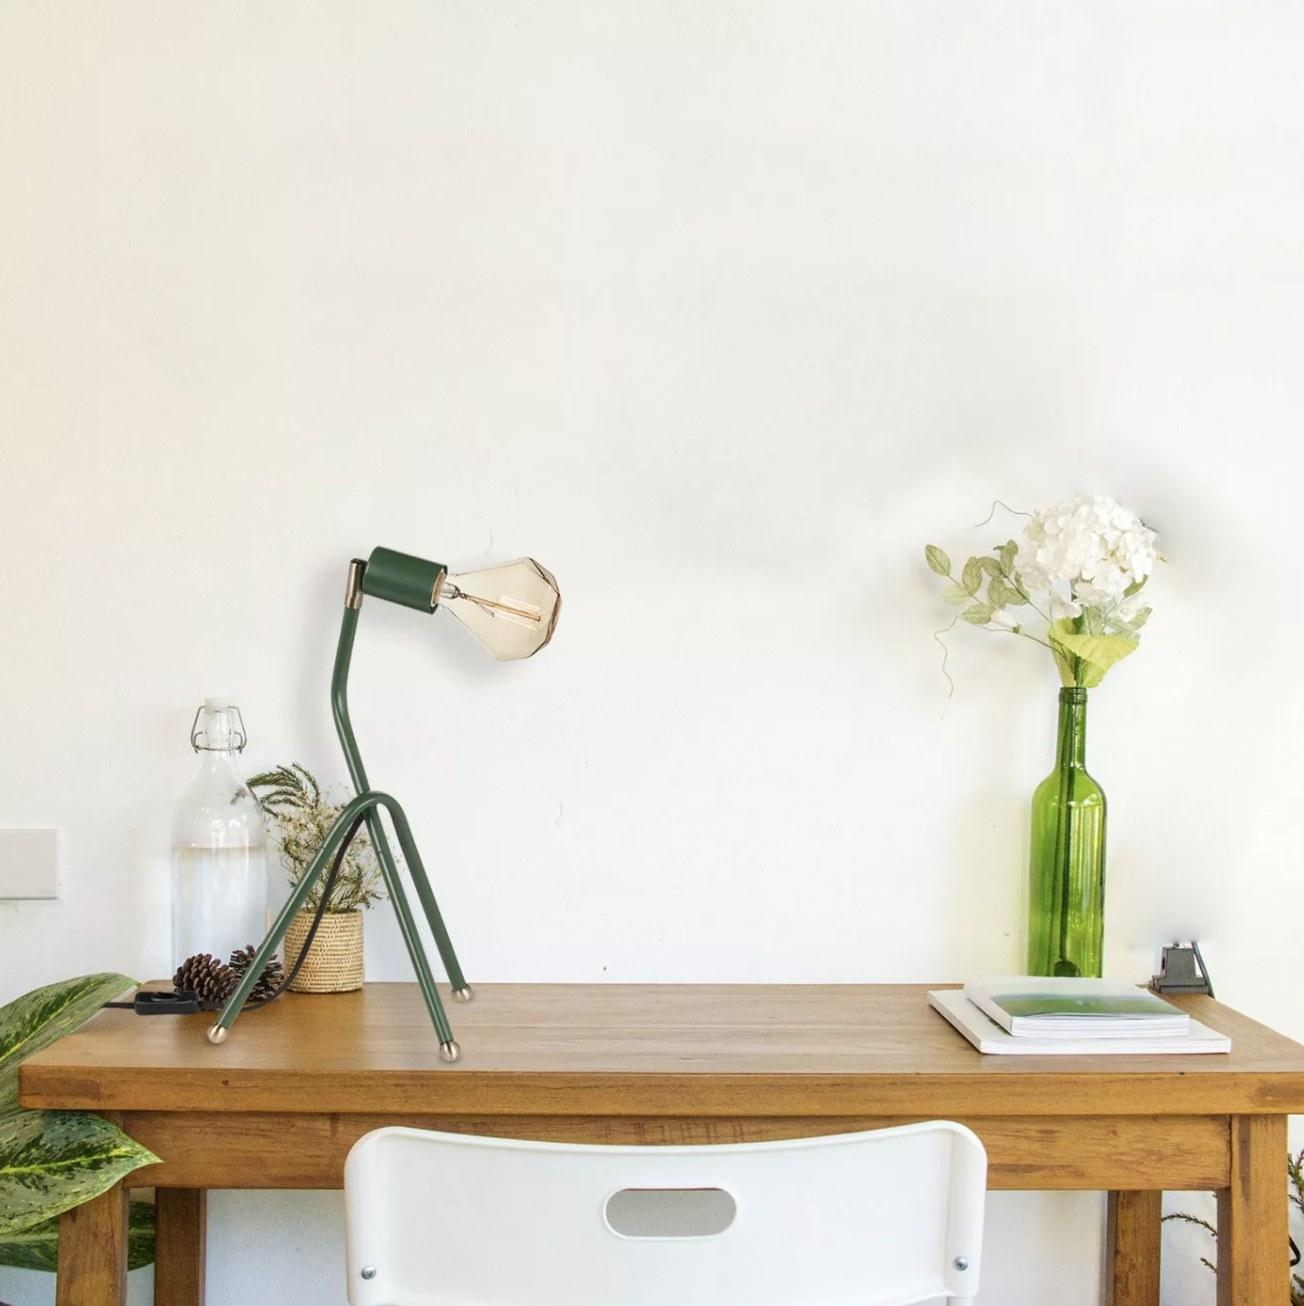 The green desk lamp on a desk